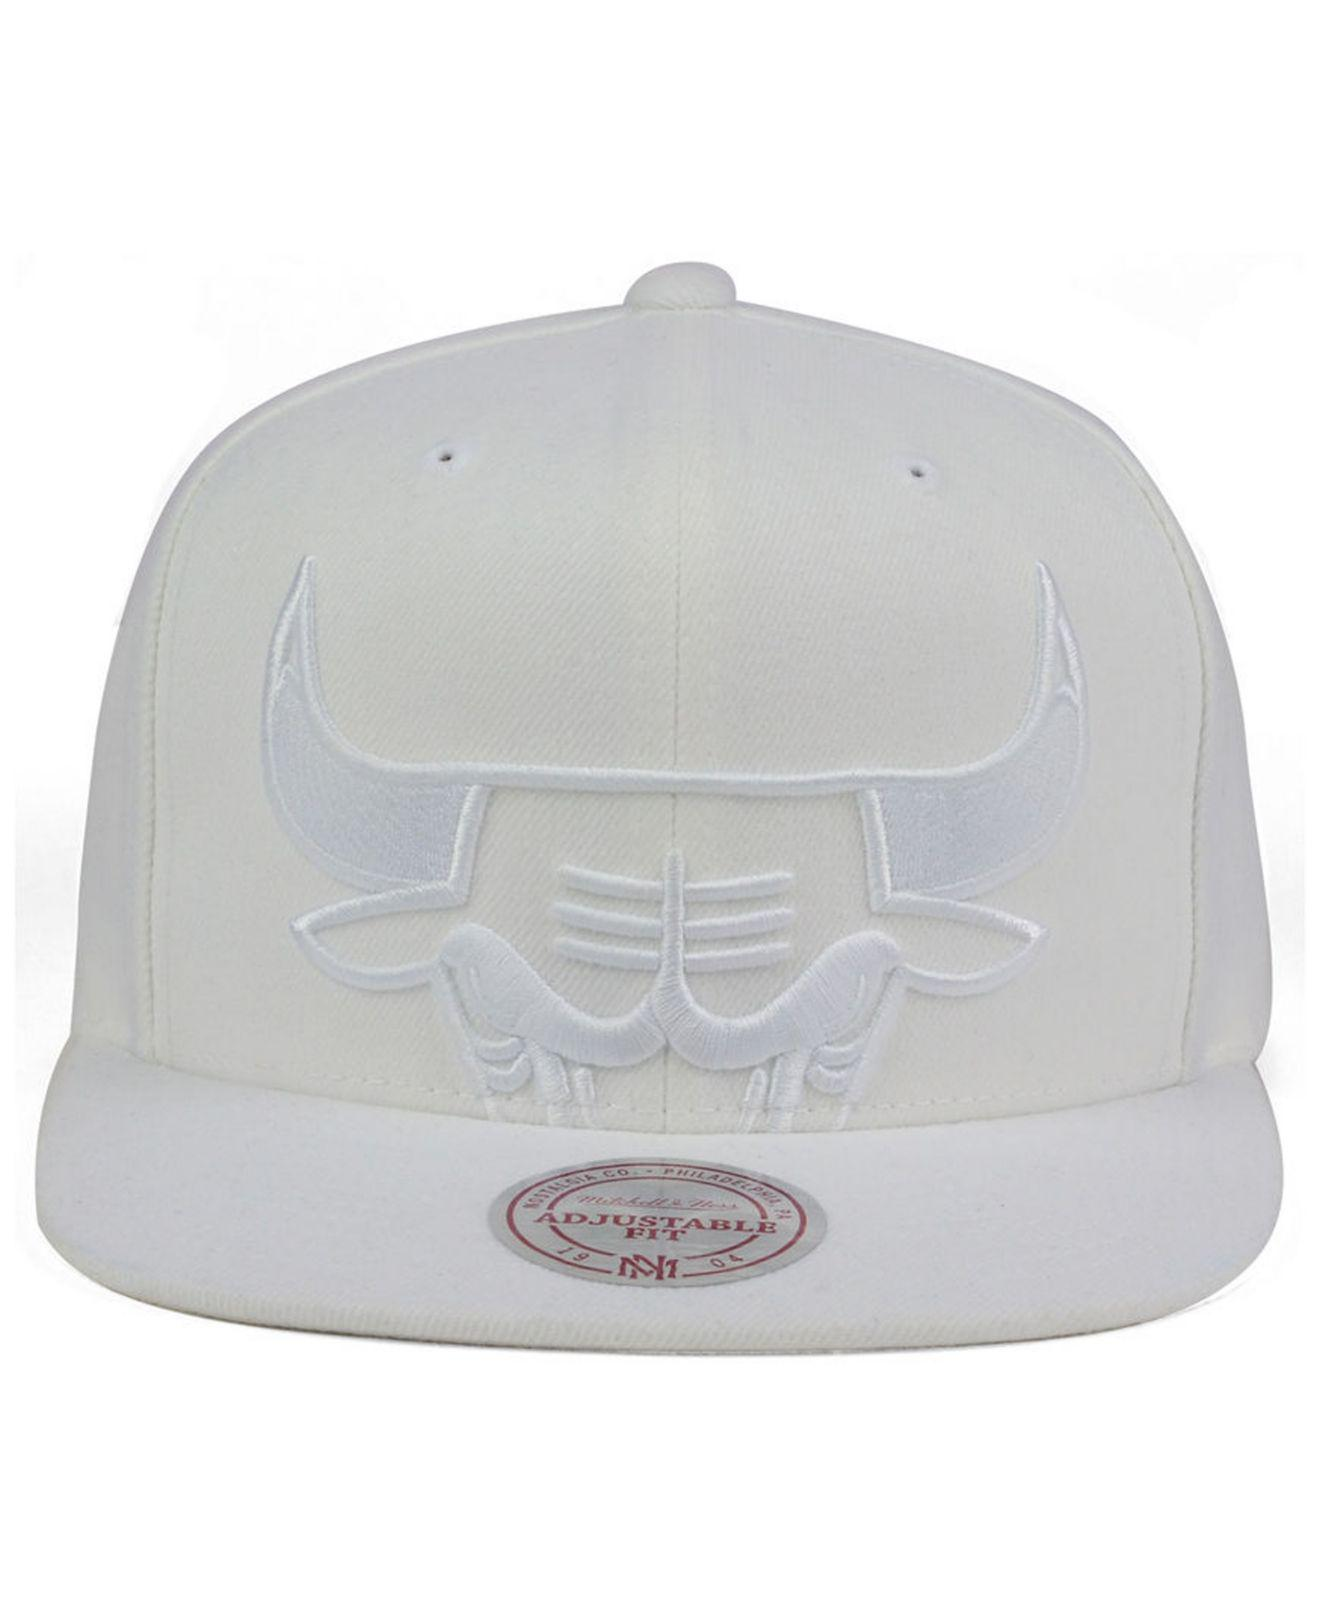 Lyst - Mitchell   Ness Chicago Bulls Cropped Xl Logo Snapback Cap in White  for Men 3f872573036